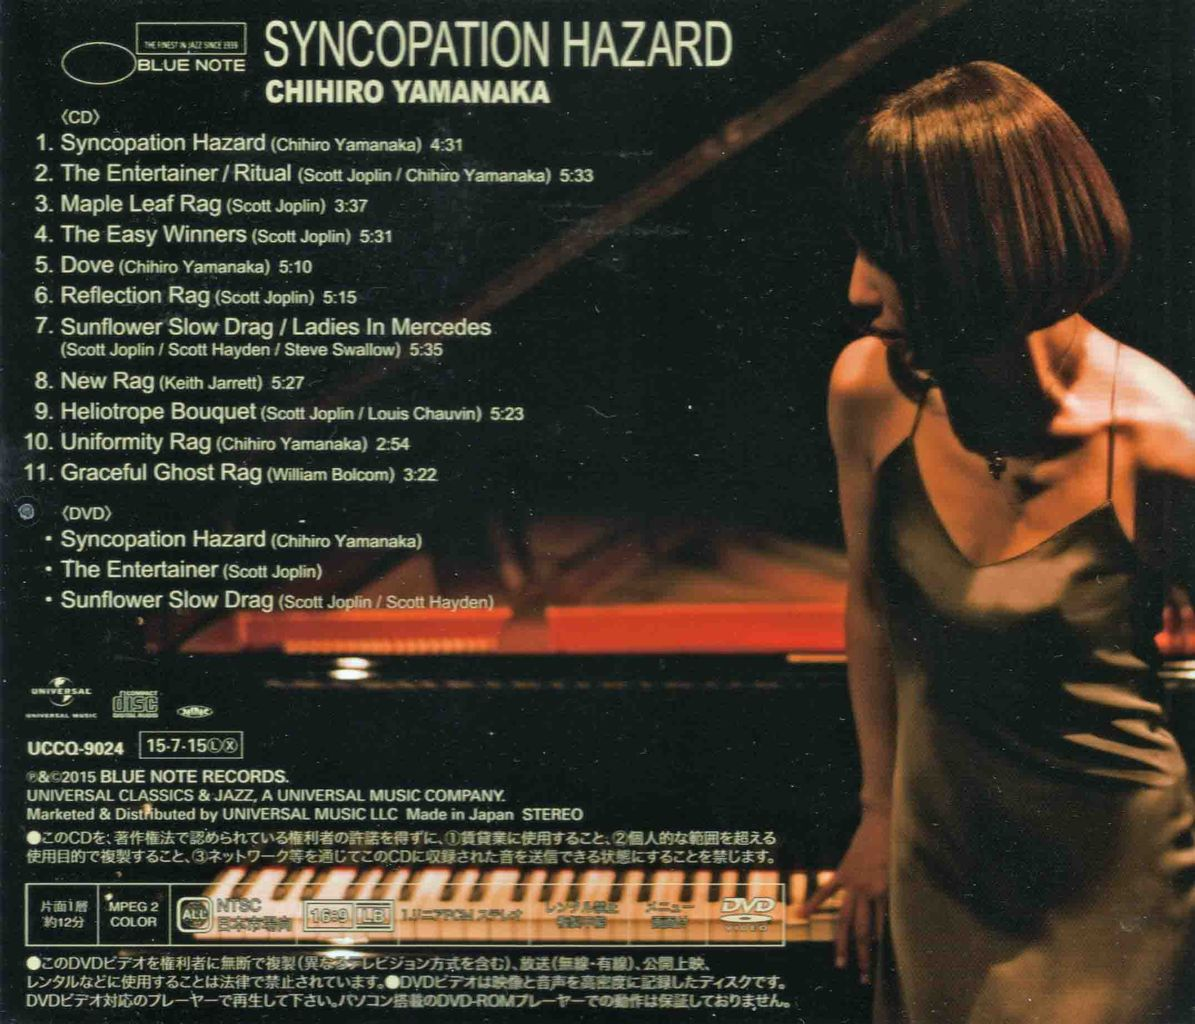 SYNCOPATION HAZARD-2